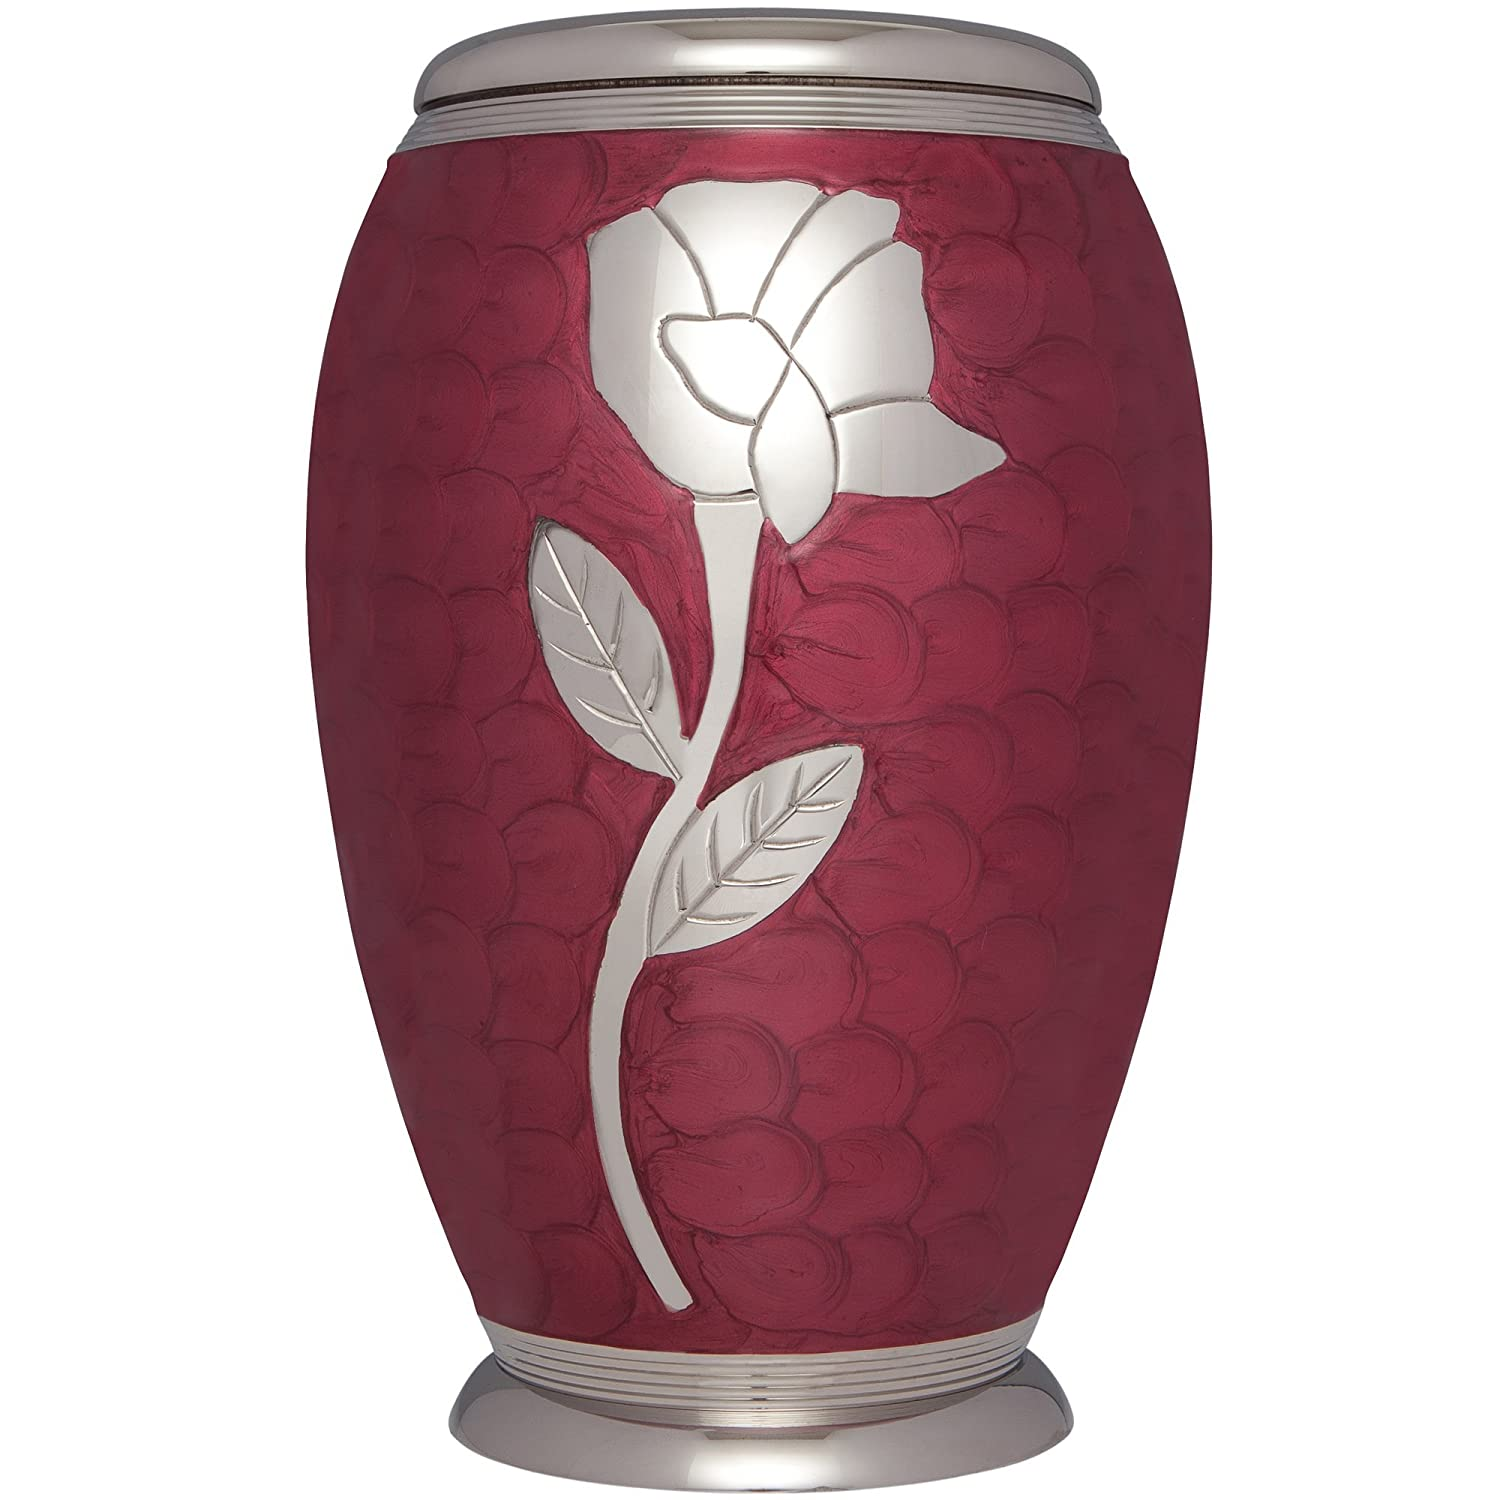 Funeral Urn by Liliane - Cremation Urn for Human or Pet Ashes - Hand Made in Brass & Hand Engraved - Display Urn at Home or in Niche at Columbarium -Talia Model (Red Enamel with Silver Flower,Adult)